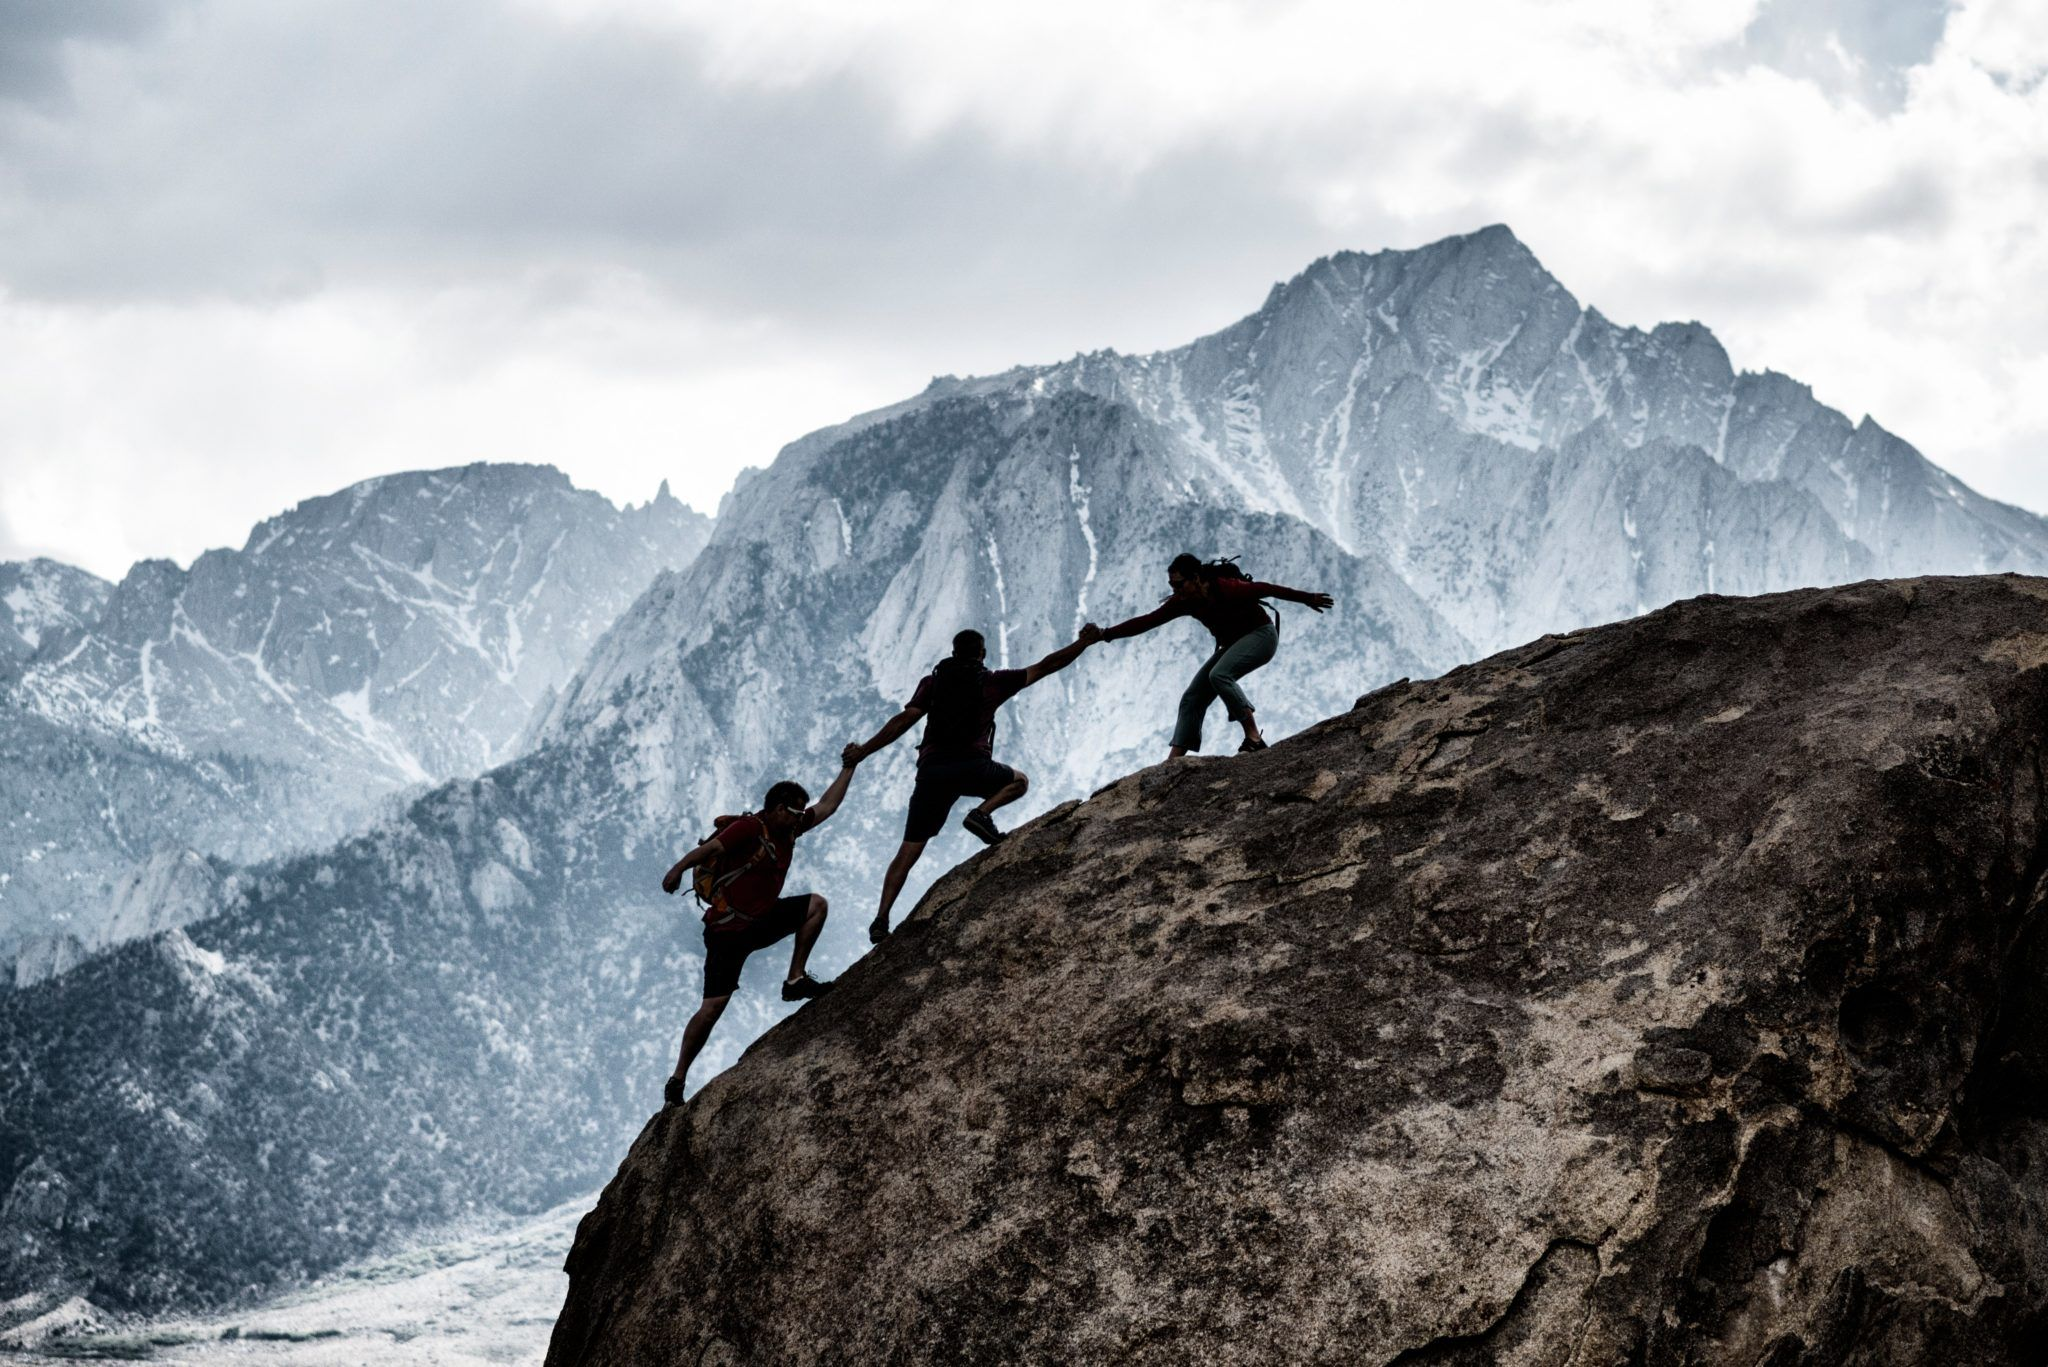 3 men climbing a mountain. All three are helping eachother climb.